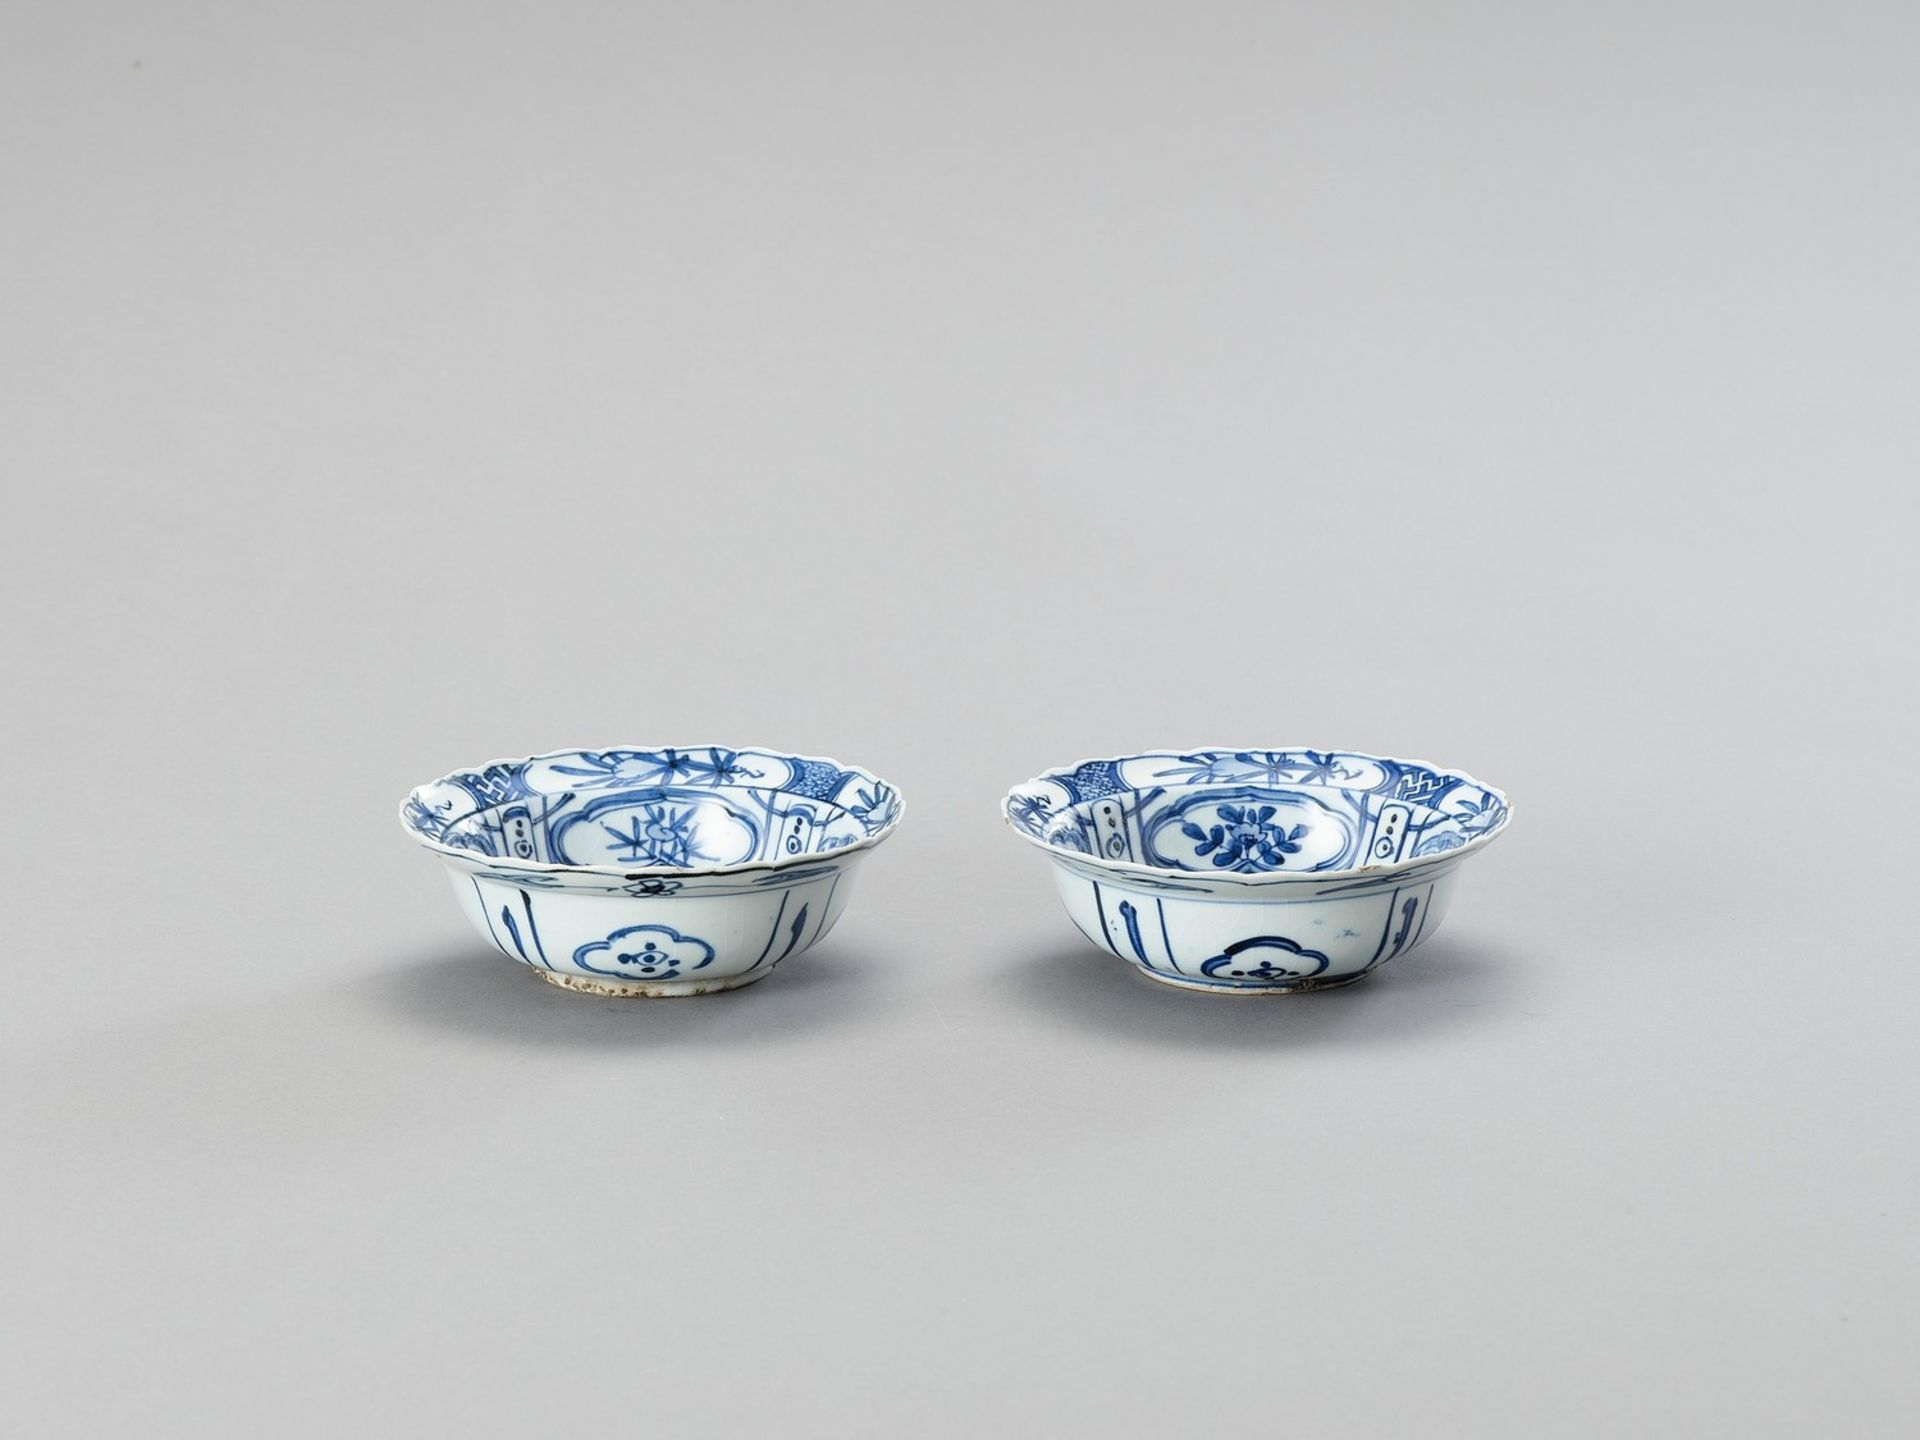 A PAIR OF BLUE AND WHITE 'KRAAK' STYLE PORCELAIN BOWLS - Bild 4 aus 4